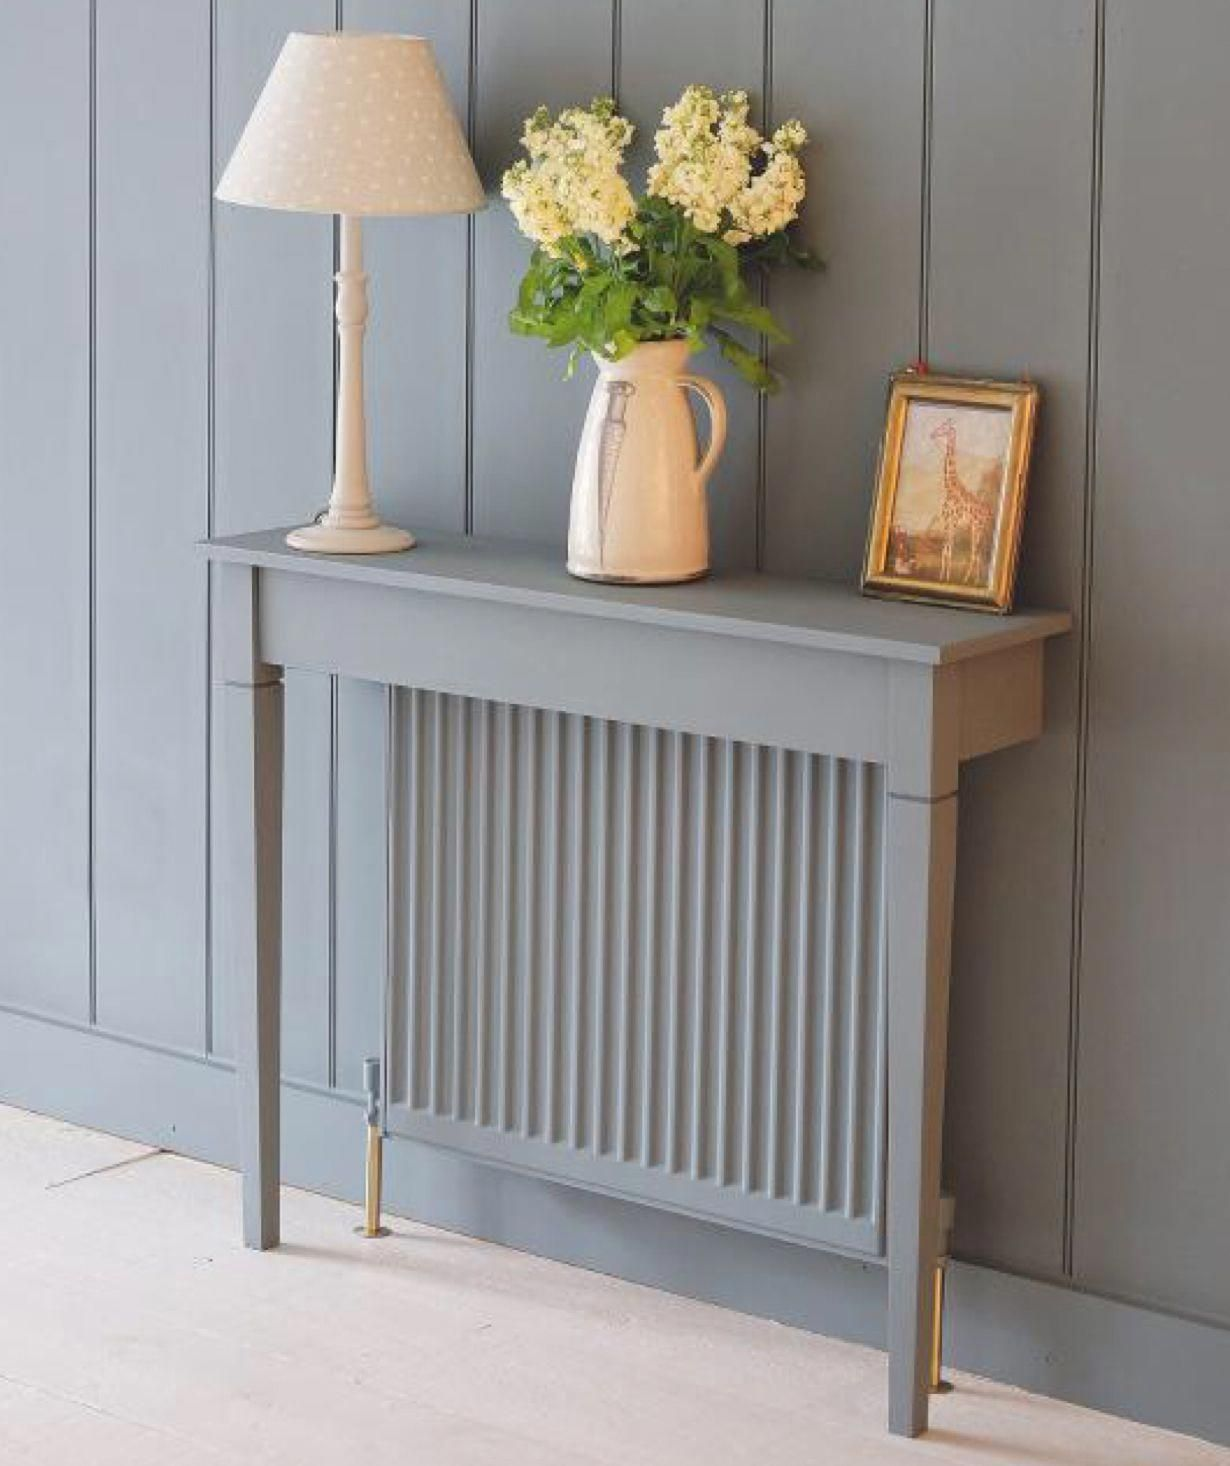 Radiator table good idea for narrow hallway?